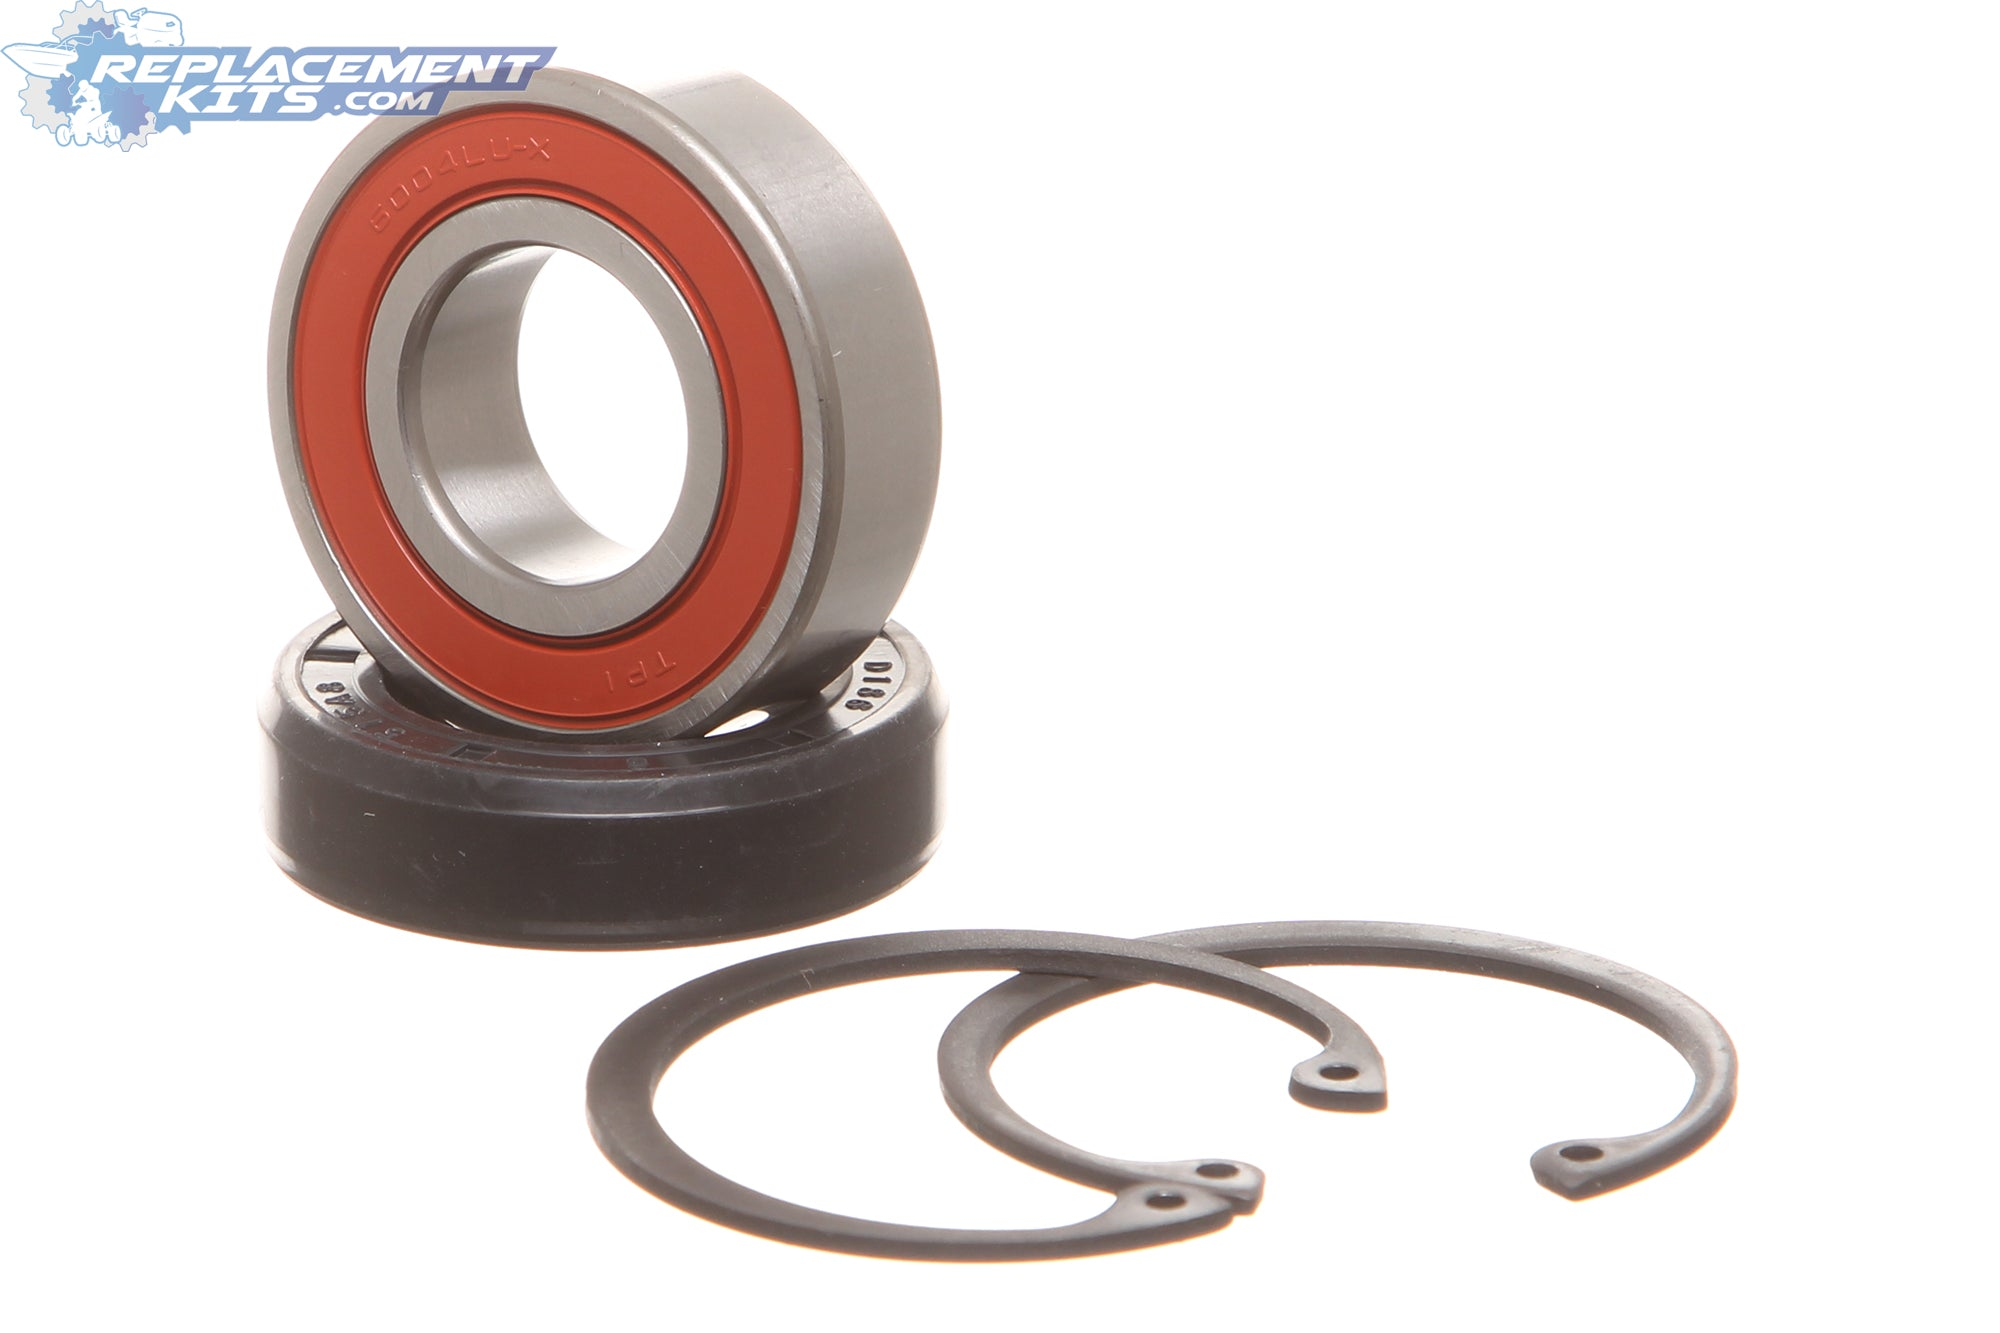 Rear Axle Bearing/Seal Kit for Yamaha Golf Carts Golf Cart Rear Axle Type on golf cart front, golf cart engine cooling, golf cart bumper, golf cart axle repair, golf cart ignition system, golf cart instrument panel, electric golf cart axle, golf cart muffler, golf cart spindle, golf cart hood, golf cart wipers, golf cart wheel base, golf cart exterior, golf cart hubs, golf cart transmission, golf cart tailgate, golf cart frame, golf cart cooling system, golf cart windows, golf cart fuel,